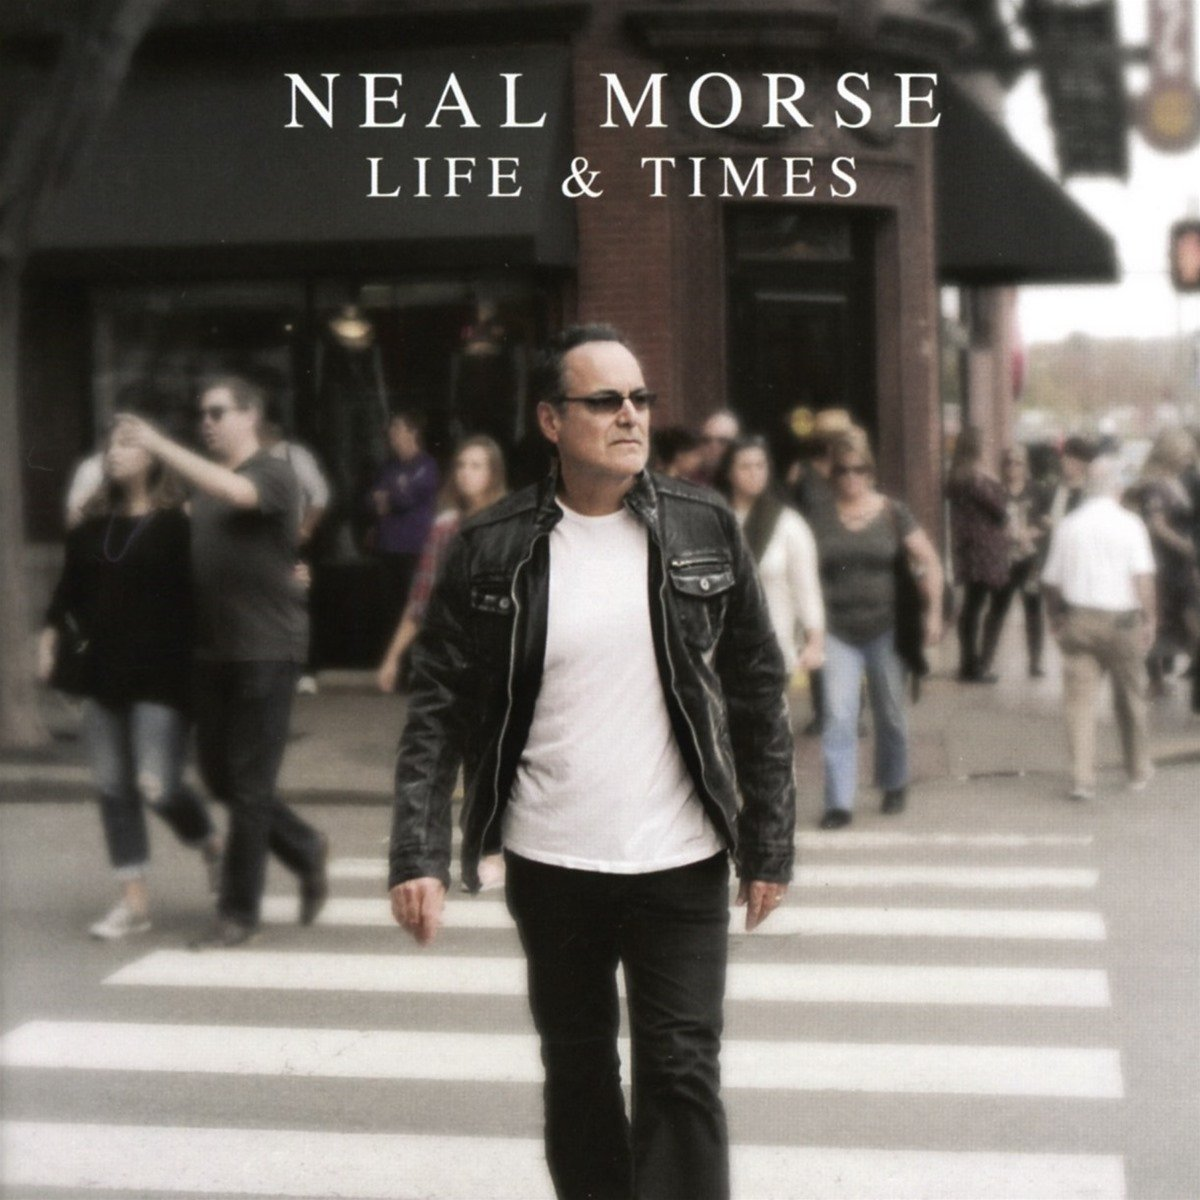 Neal Morse: Life and Times (2018) Book Cover